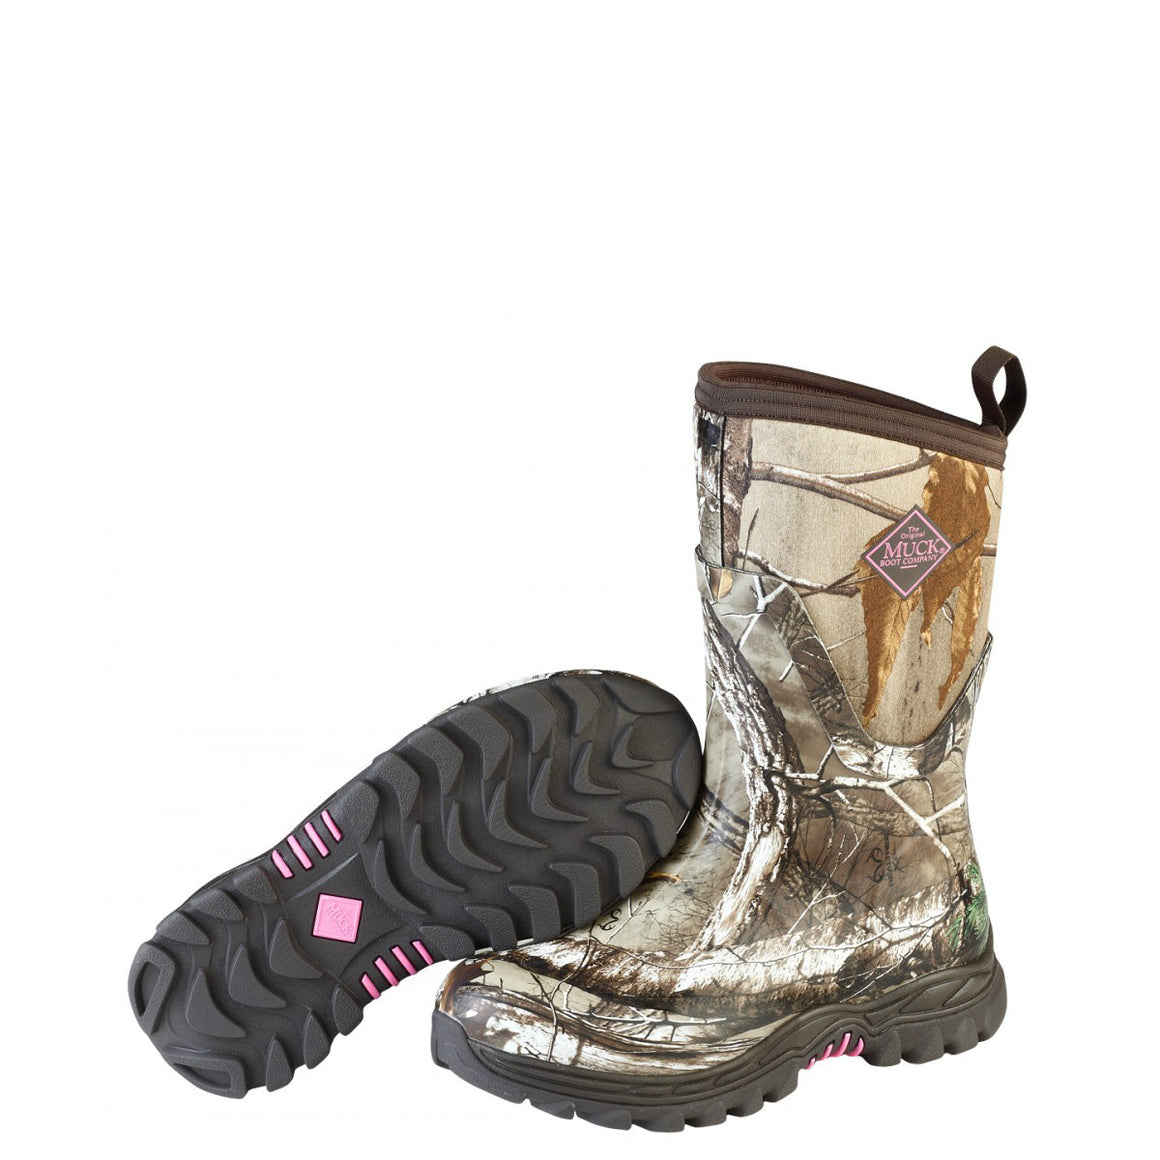 Muck Boots Women's Arctic Hunter Mid Boot - Bark/Realtree Xtra/Phlox Pink AHM-4RTAP